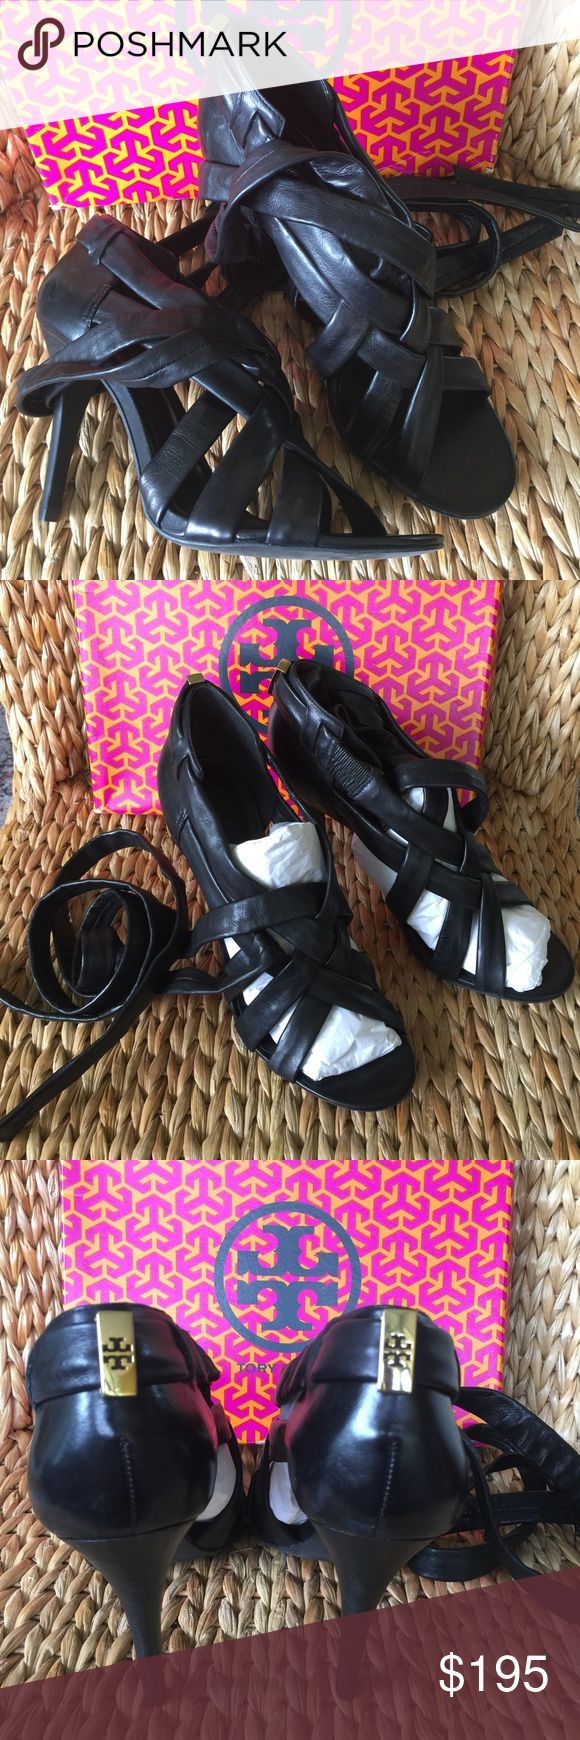 Kate Spade Black Leather  Ankle Wrap Sandals Kate Spade ankle wrap Sandals in super soft black leather. Criss cross design. Stacked black heel. Gold Tory logo at back. Size 10M new in box... Tory Burch Shoes Heels